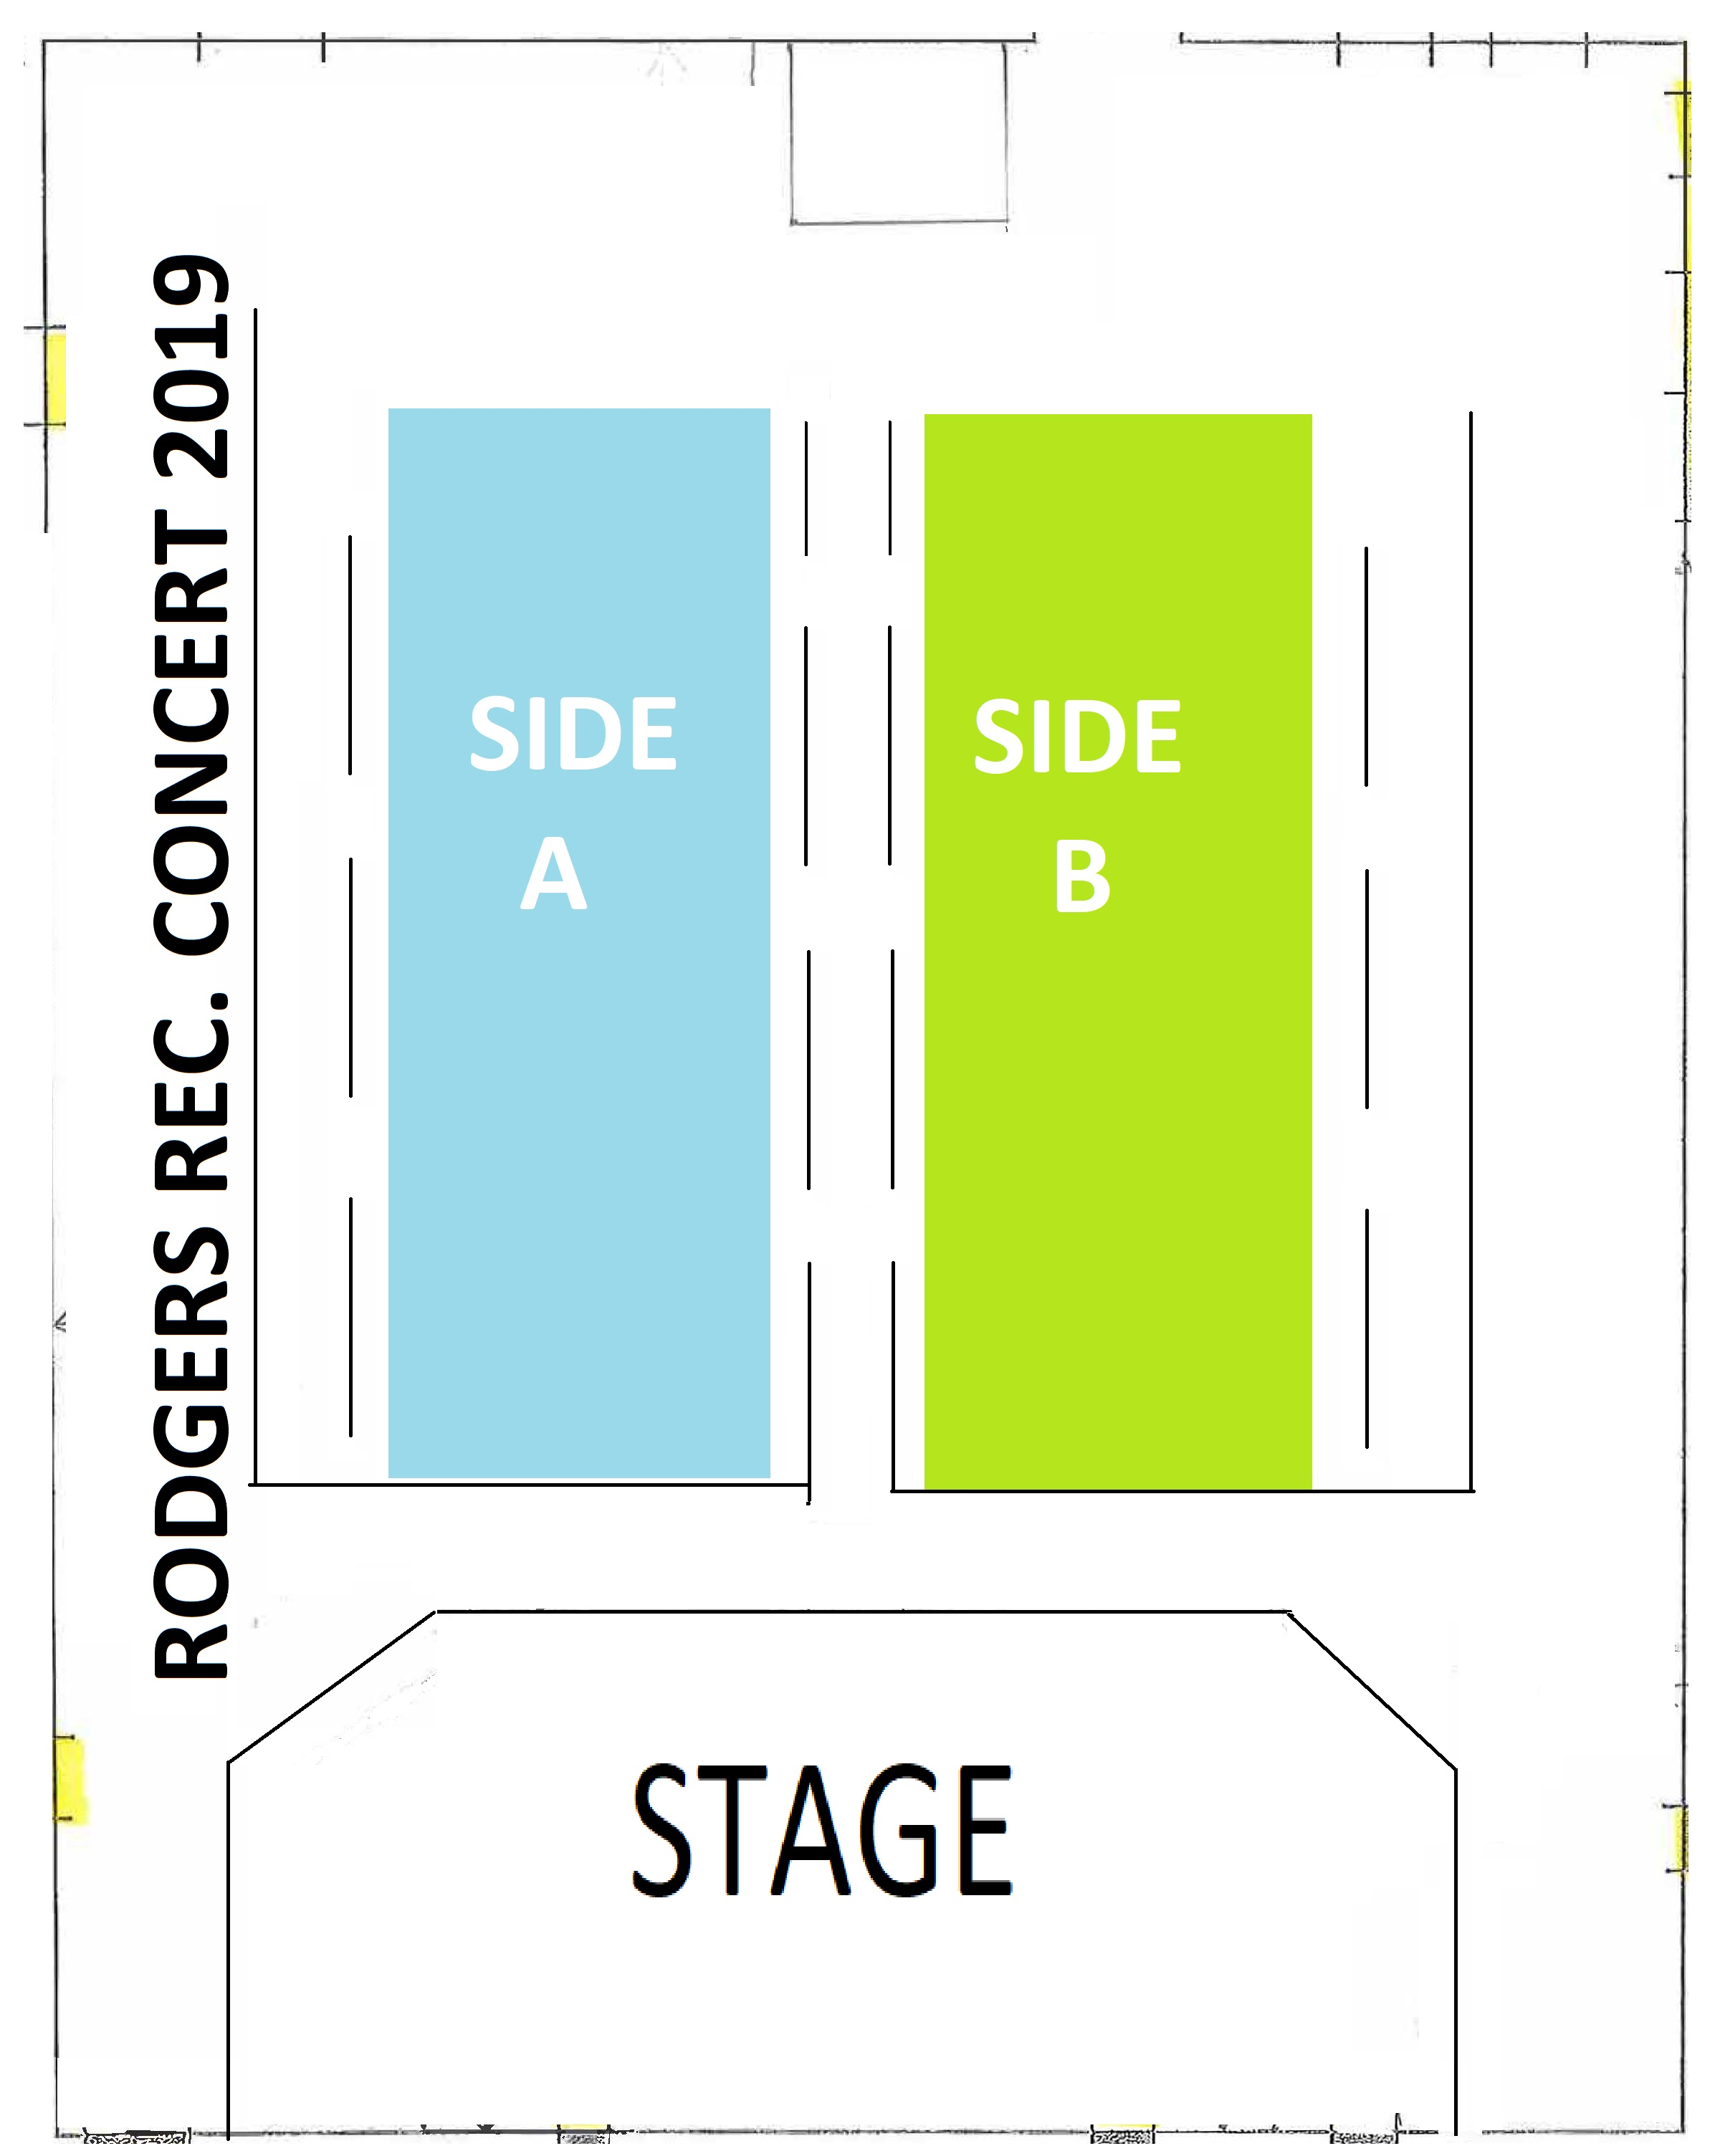 rodgers concert layout 2019